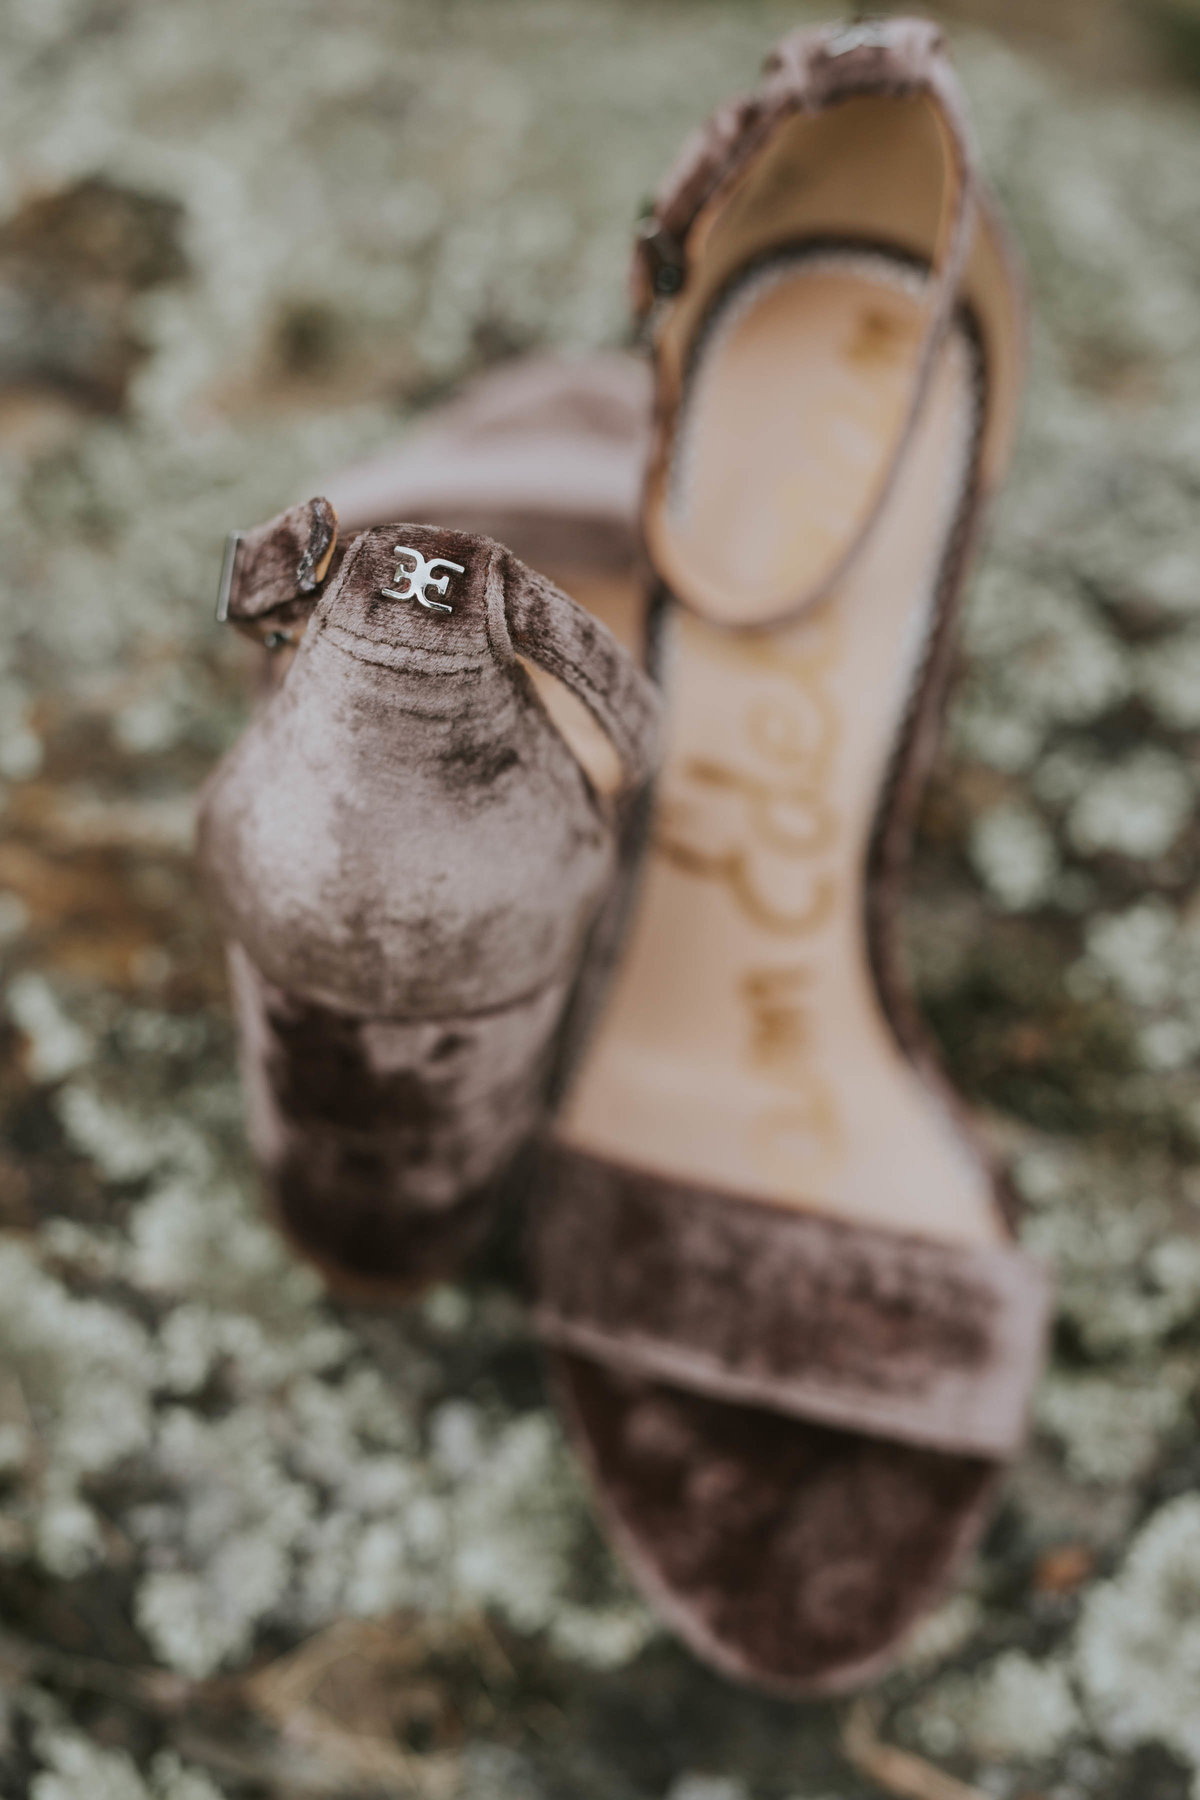 vermont-wedding-engagement-elopement-photographer-0918